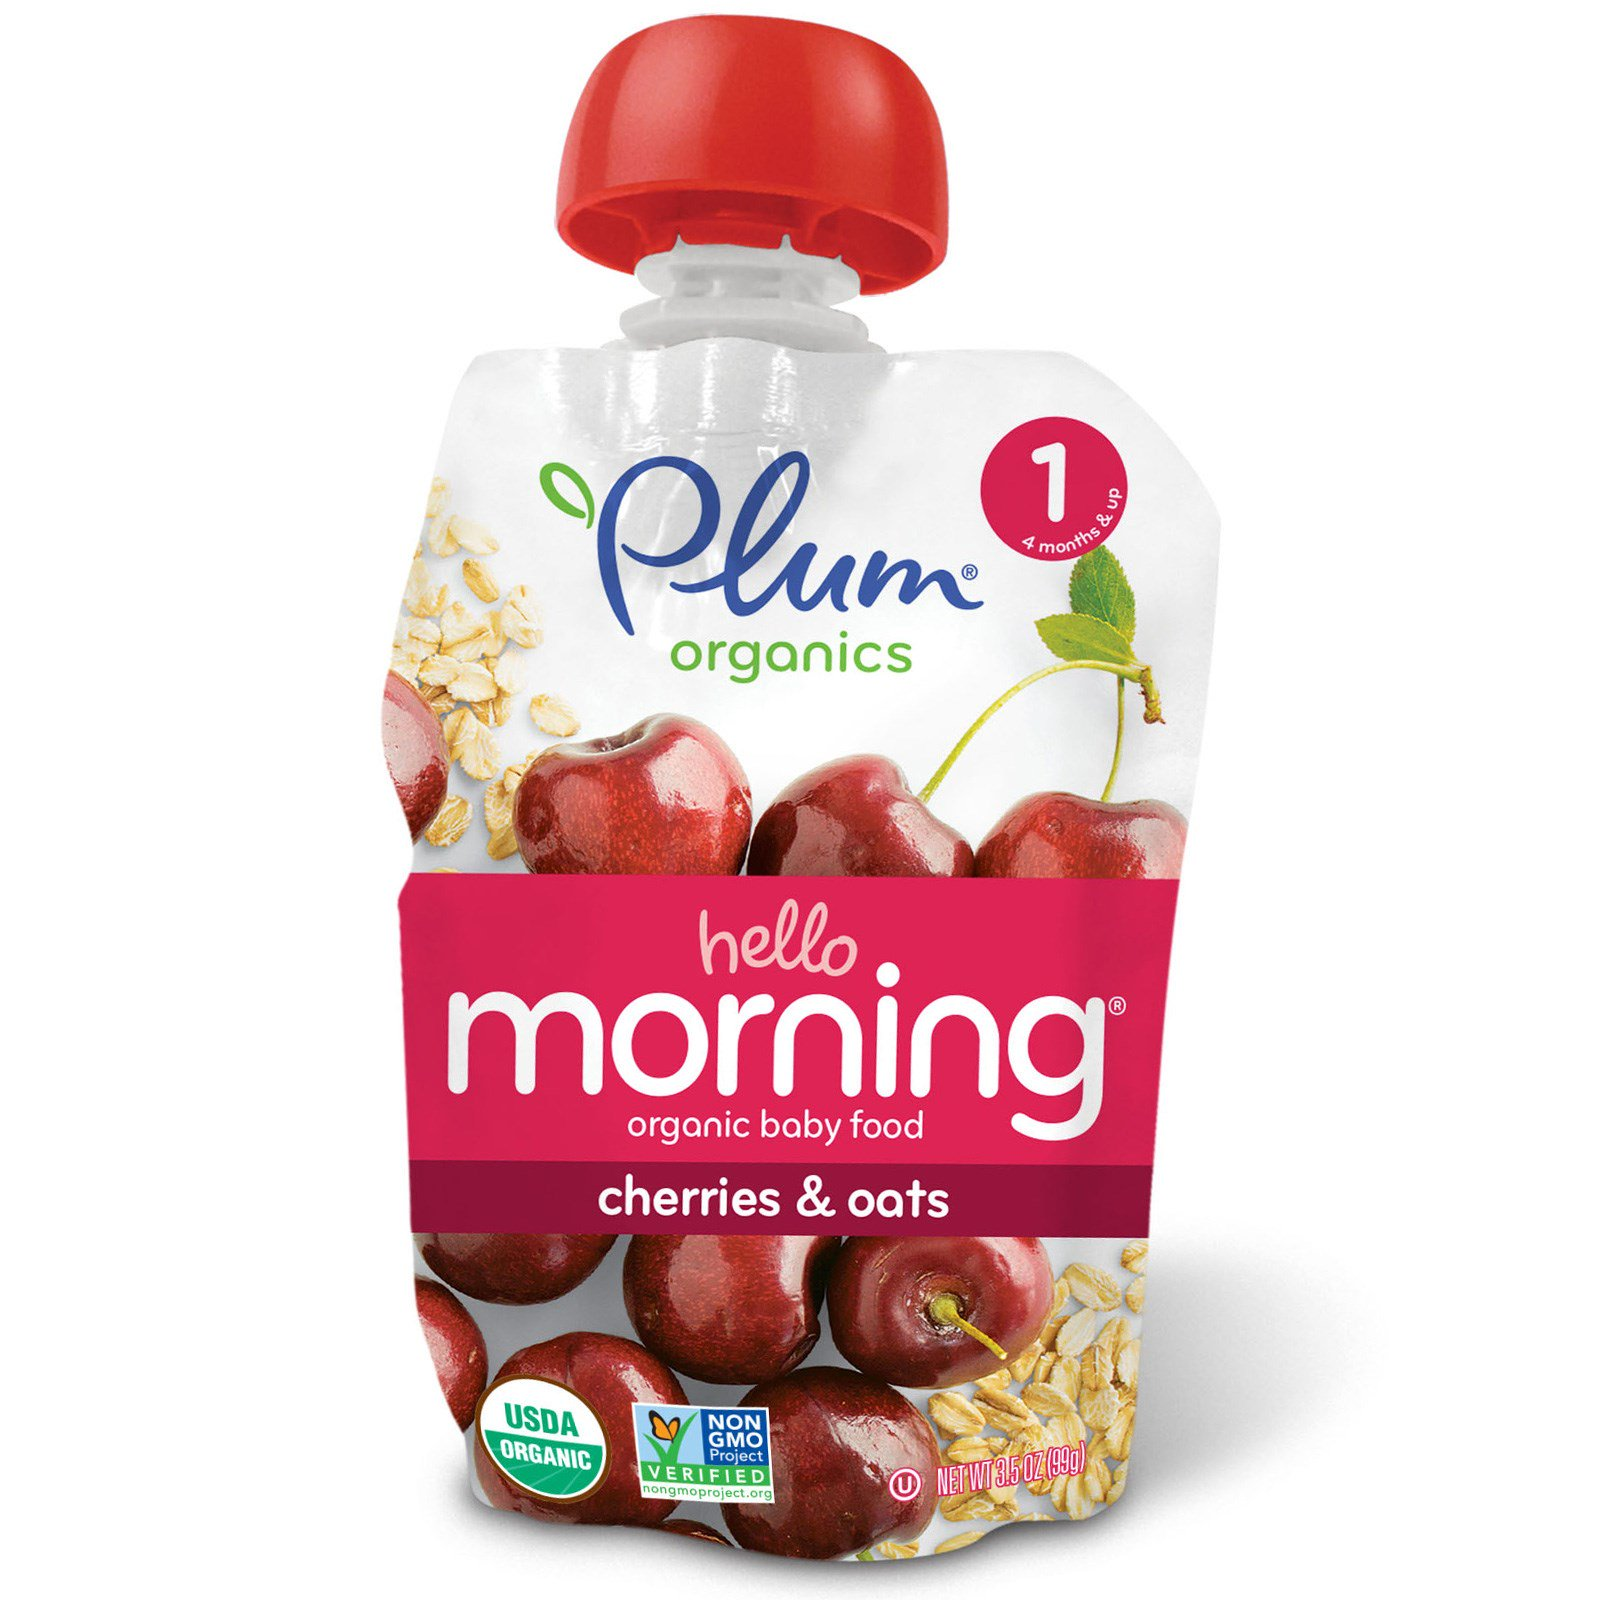 Plum Organics Organic Baby Food Stage 1 Hello Morning Cherries Oats